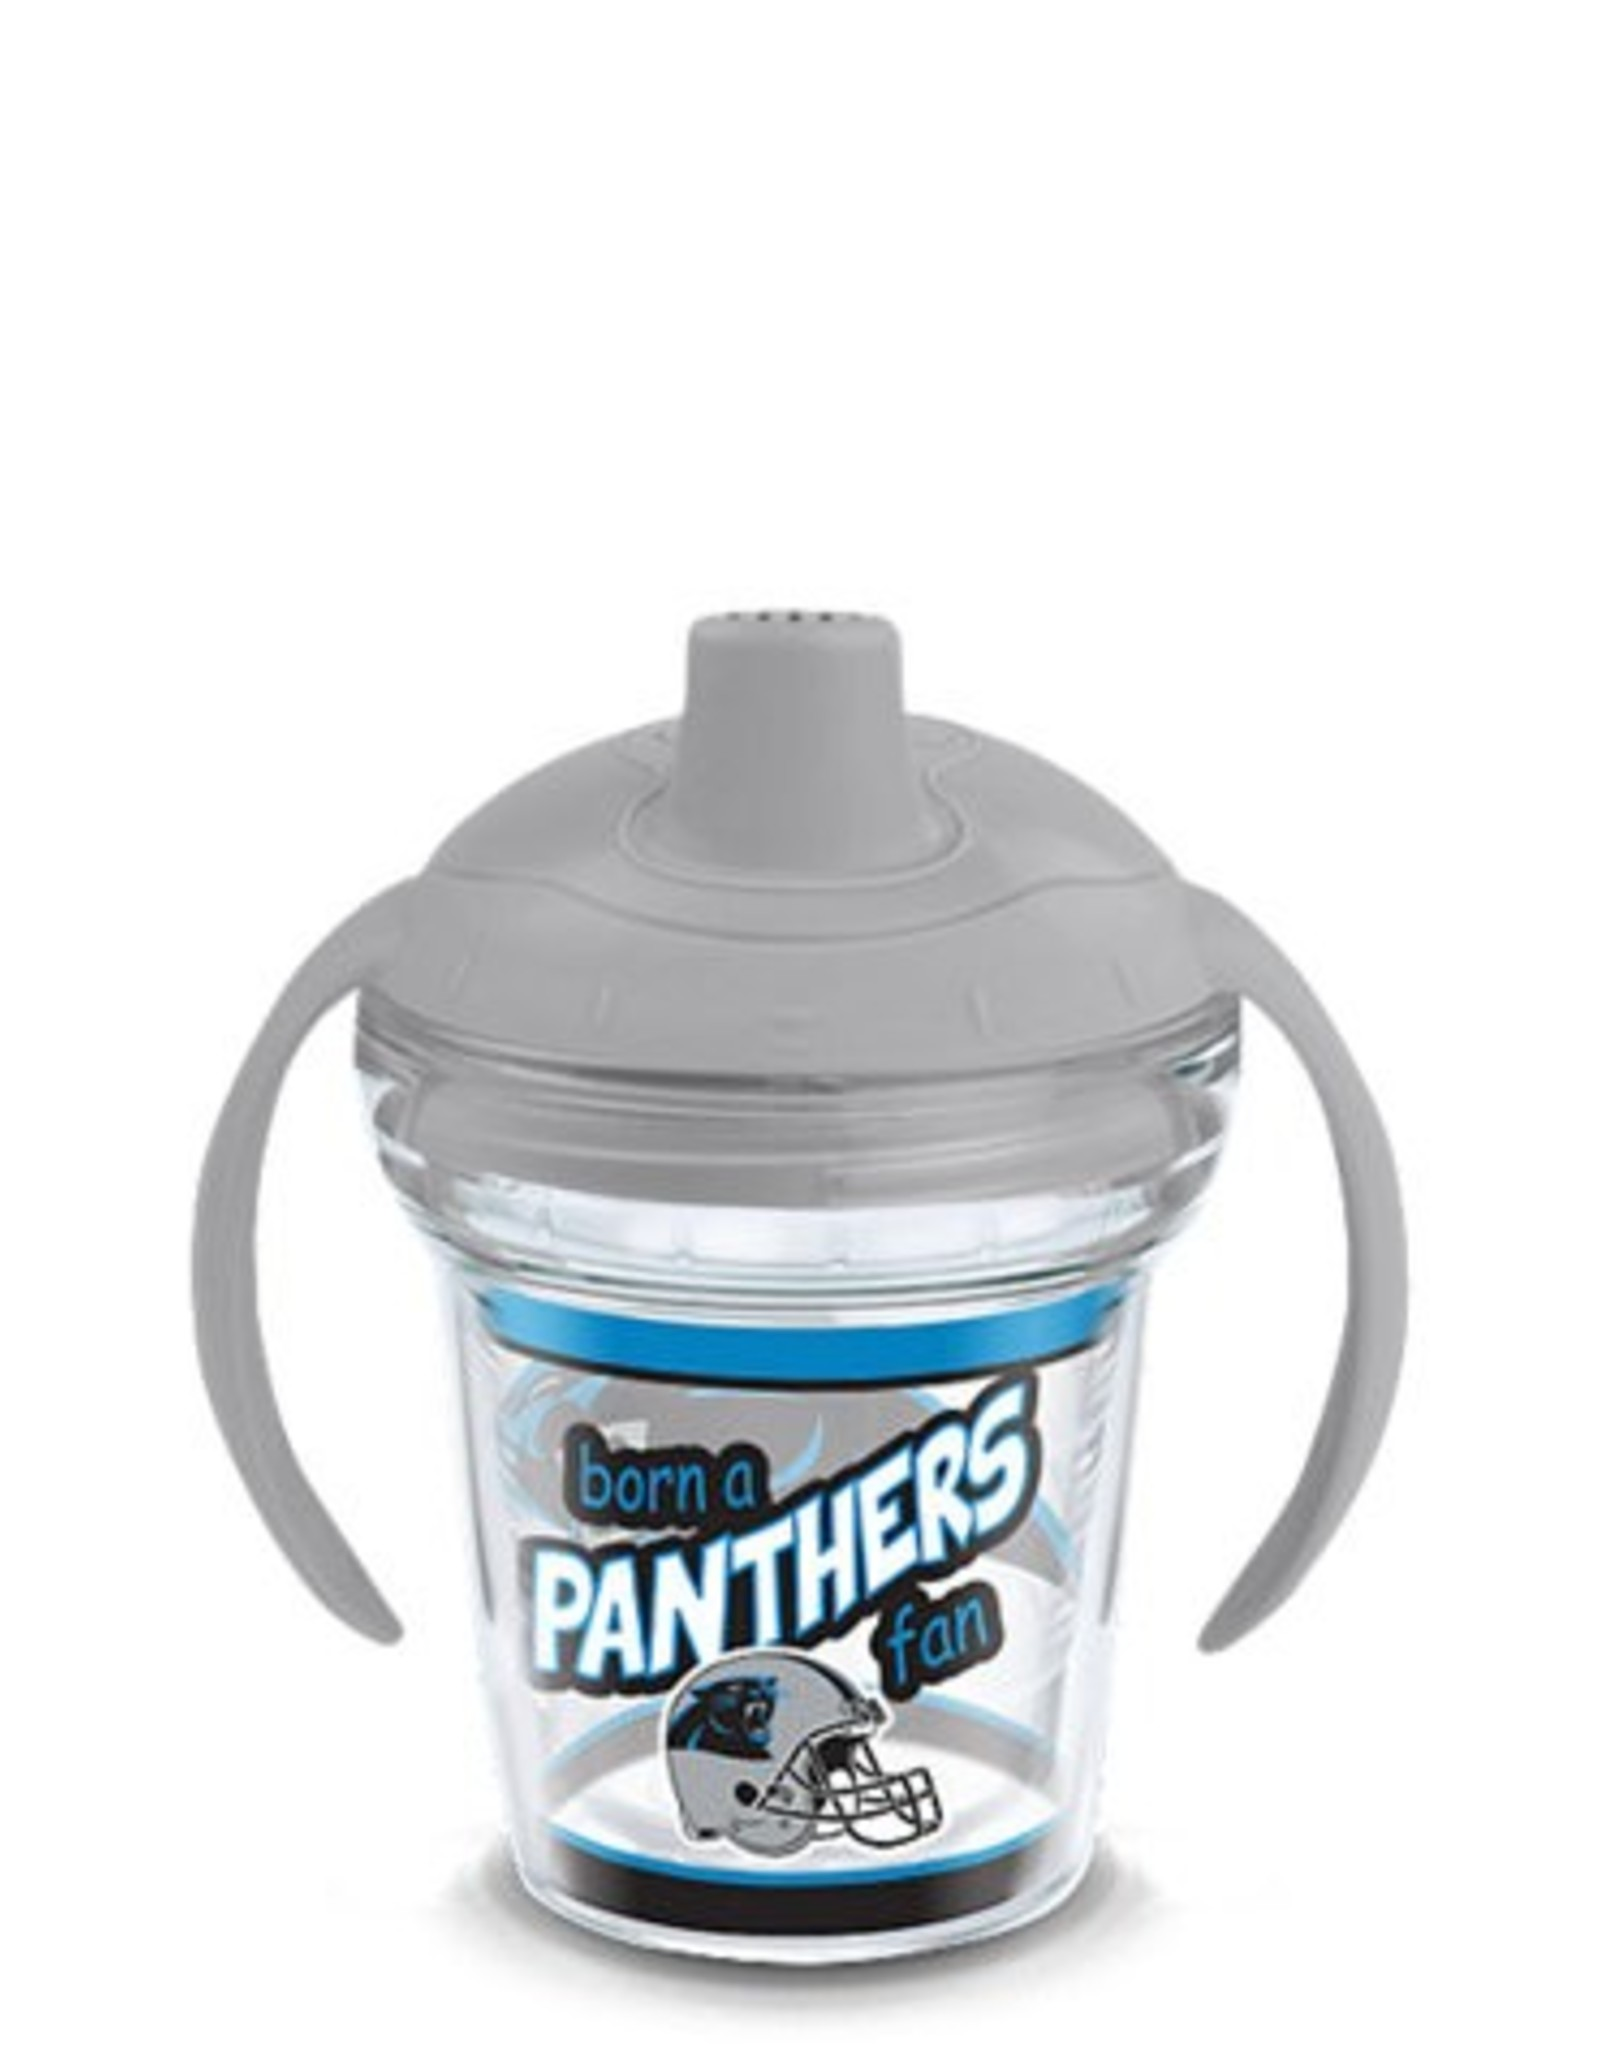 TERVIS Carolina Panthers Tervis BORN A FAN Sippy Cup